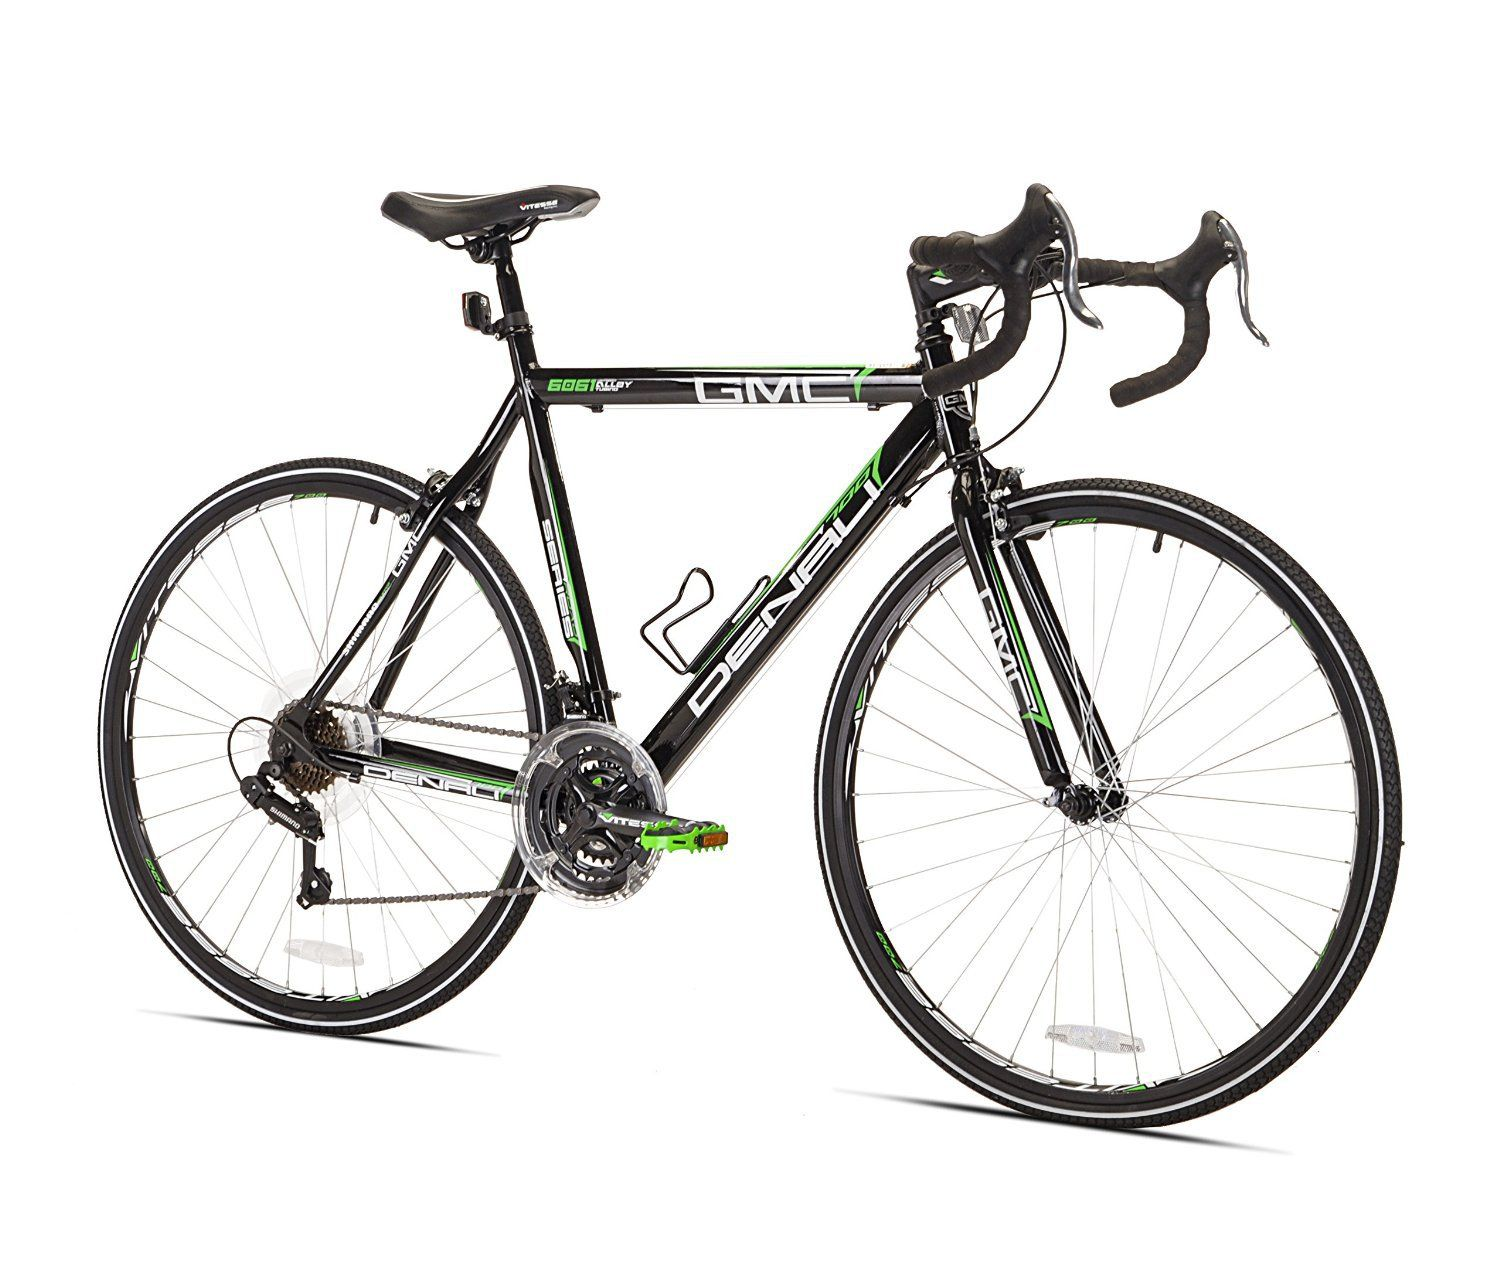 Gmc Denali Road Bike City Bike Road Bike Gmc Denali